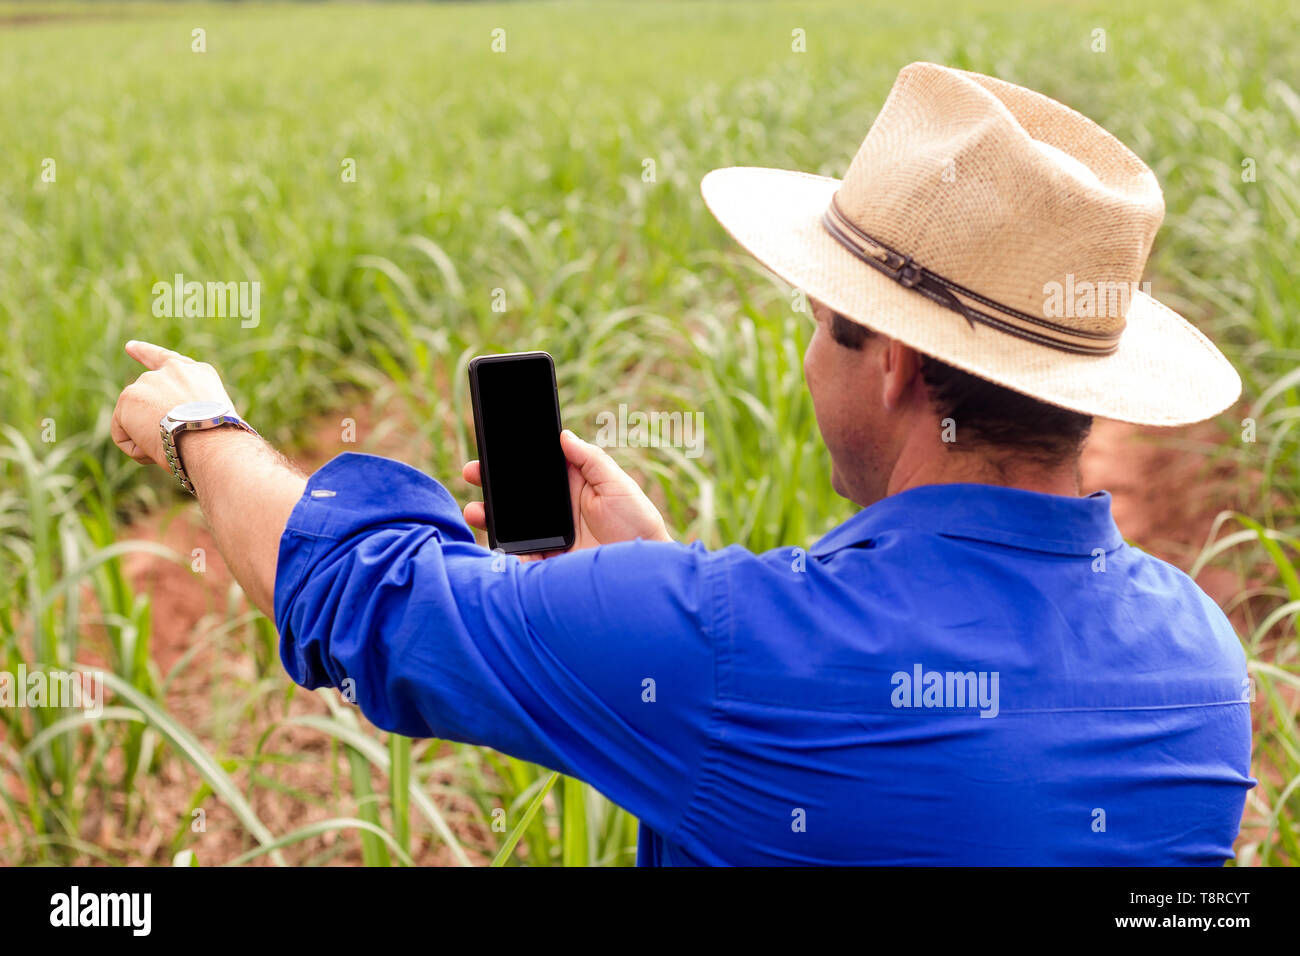 A farmer seen in a field of sugar cane with his smartphone. Brazil became a model of diversification of the use of sugar cane as a raw material, manufacturing varied products from the plant. Agriculture in Brazil is one of the main bases of the country's economy. Agriculture is an activity that is part of the primary sector where the land is cultivated and harvested for subsistence, export or trade. Stock Photo